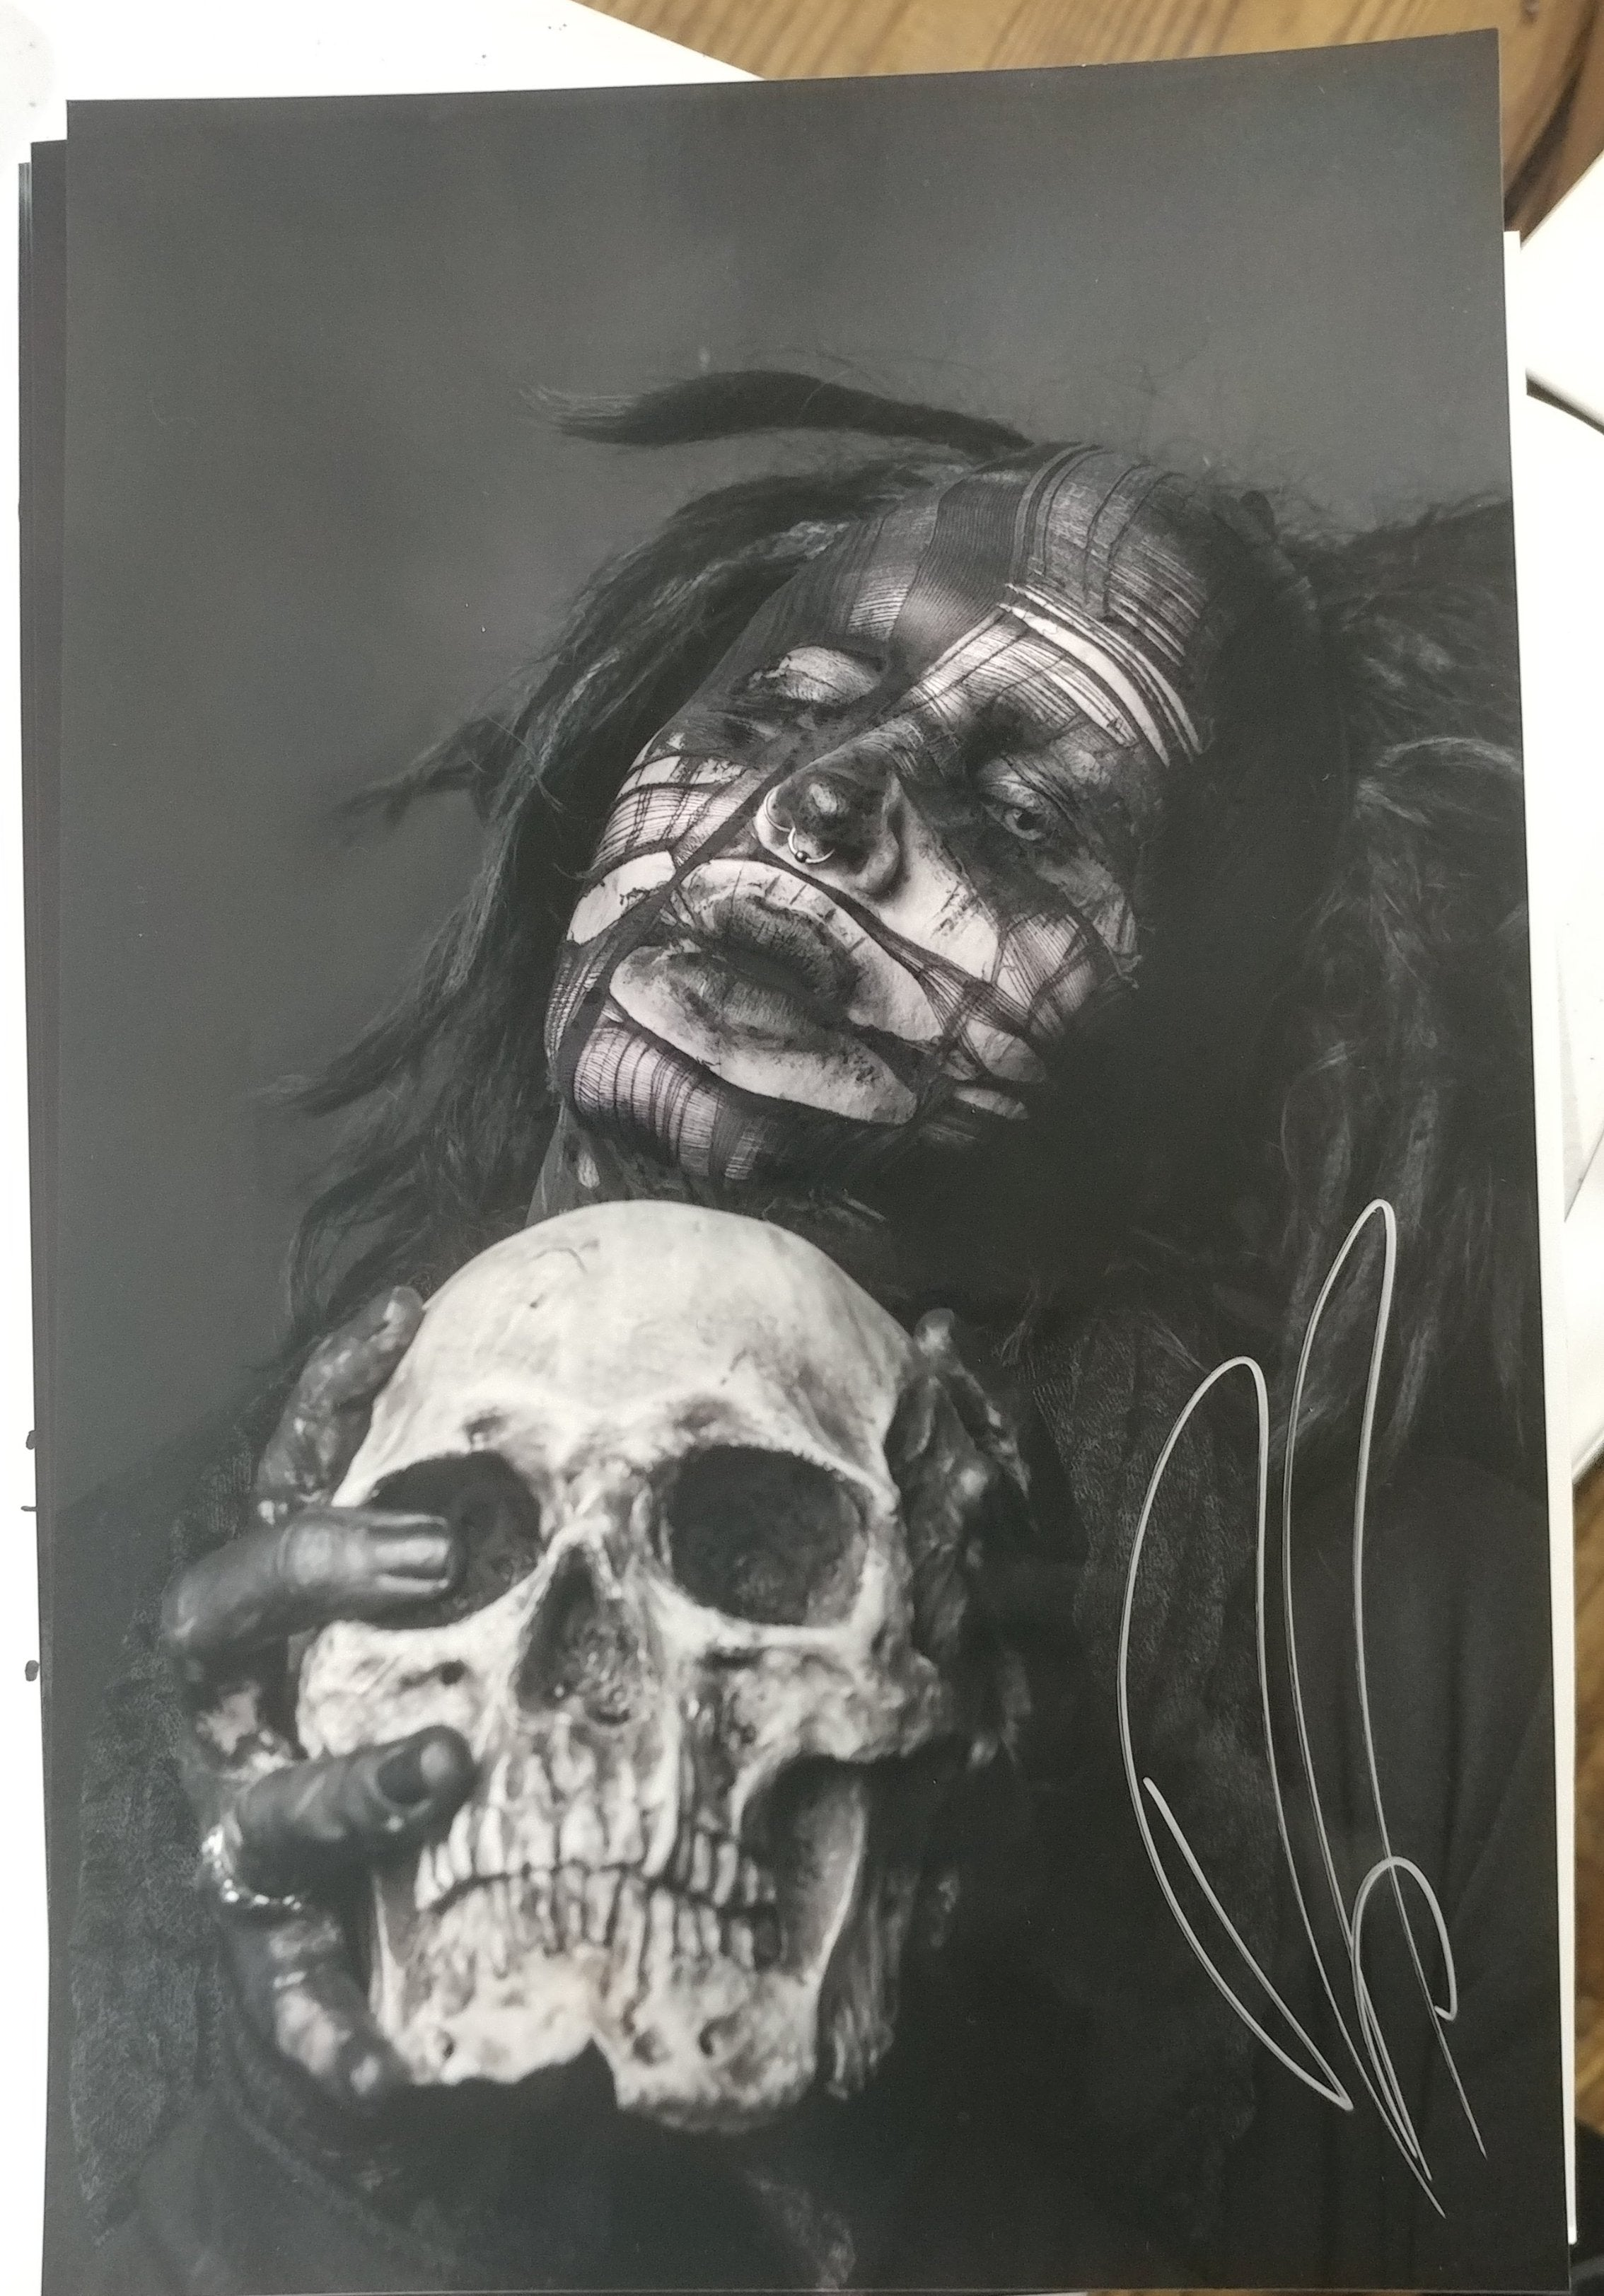 Ghost - The Love of Death - signed limited edition metallic print (only 4 available)